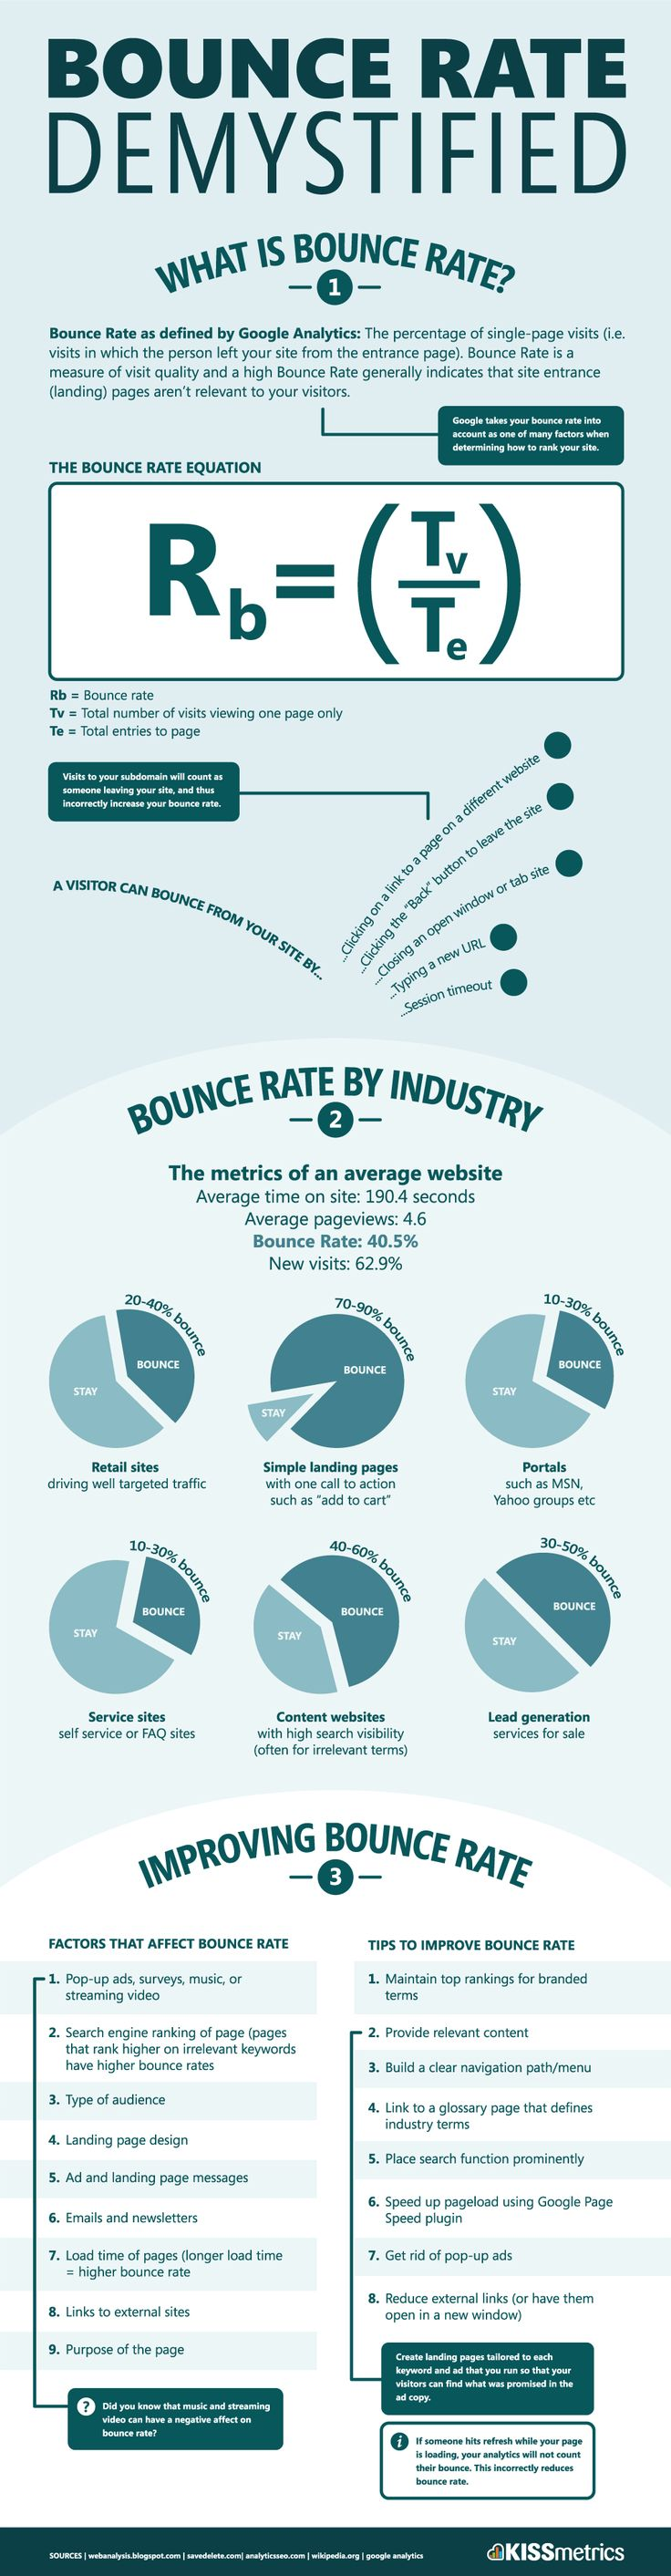 What is Bounce Rate & How Do You Improve It - Infographic #SEO #LocalSearch #SearchEngineOptimization #Google #GoogleSEO #Pinterest #PinterestTraffic